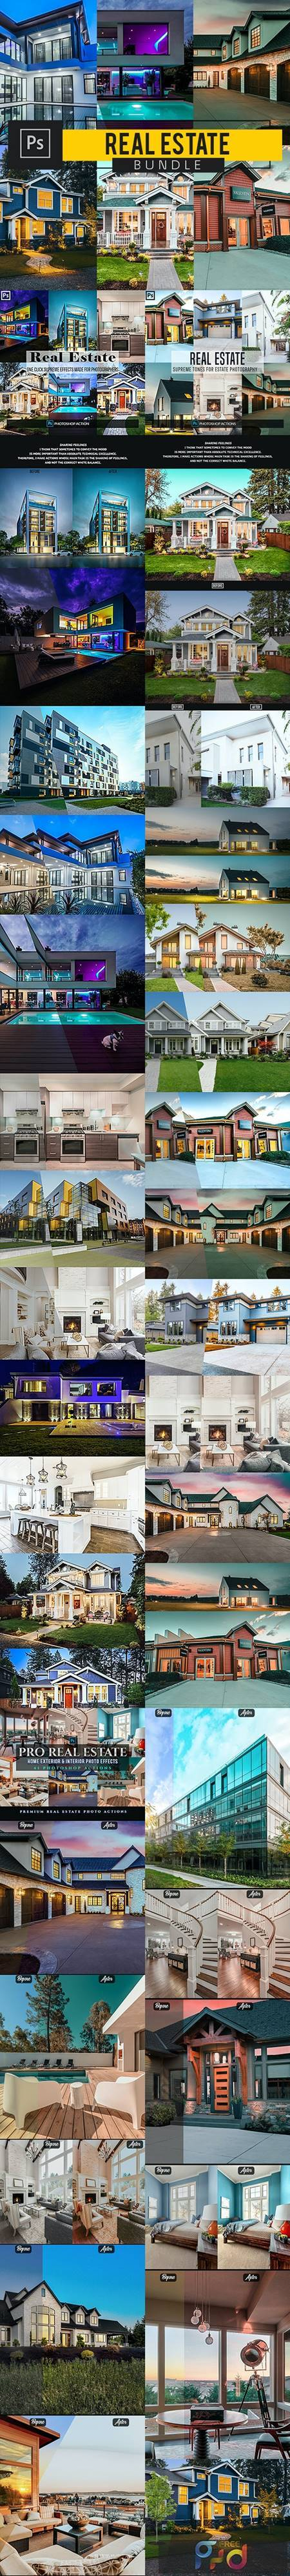 Real Estate Photoshop Actions 28329587 1